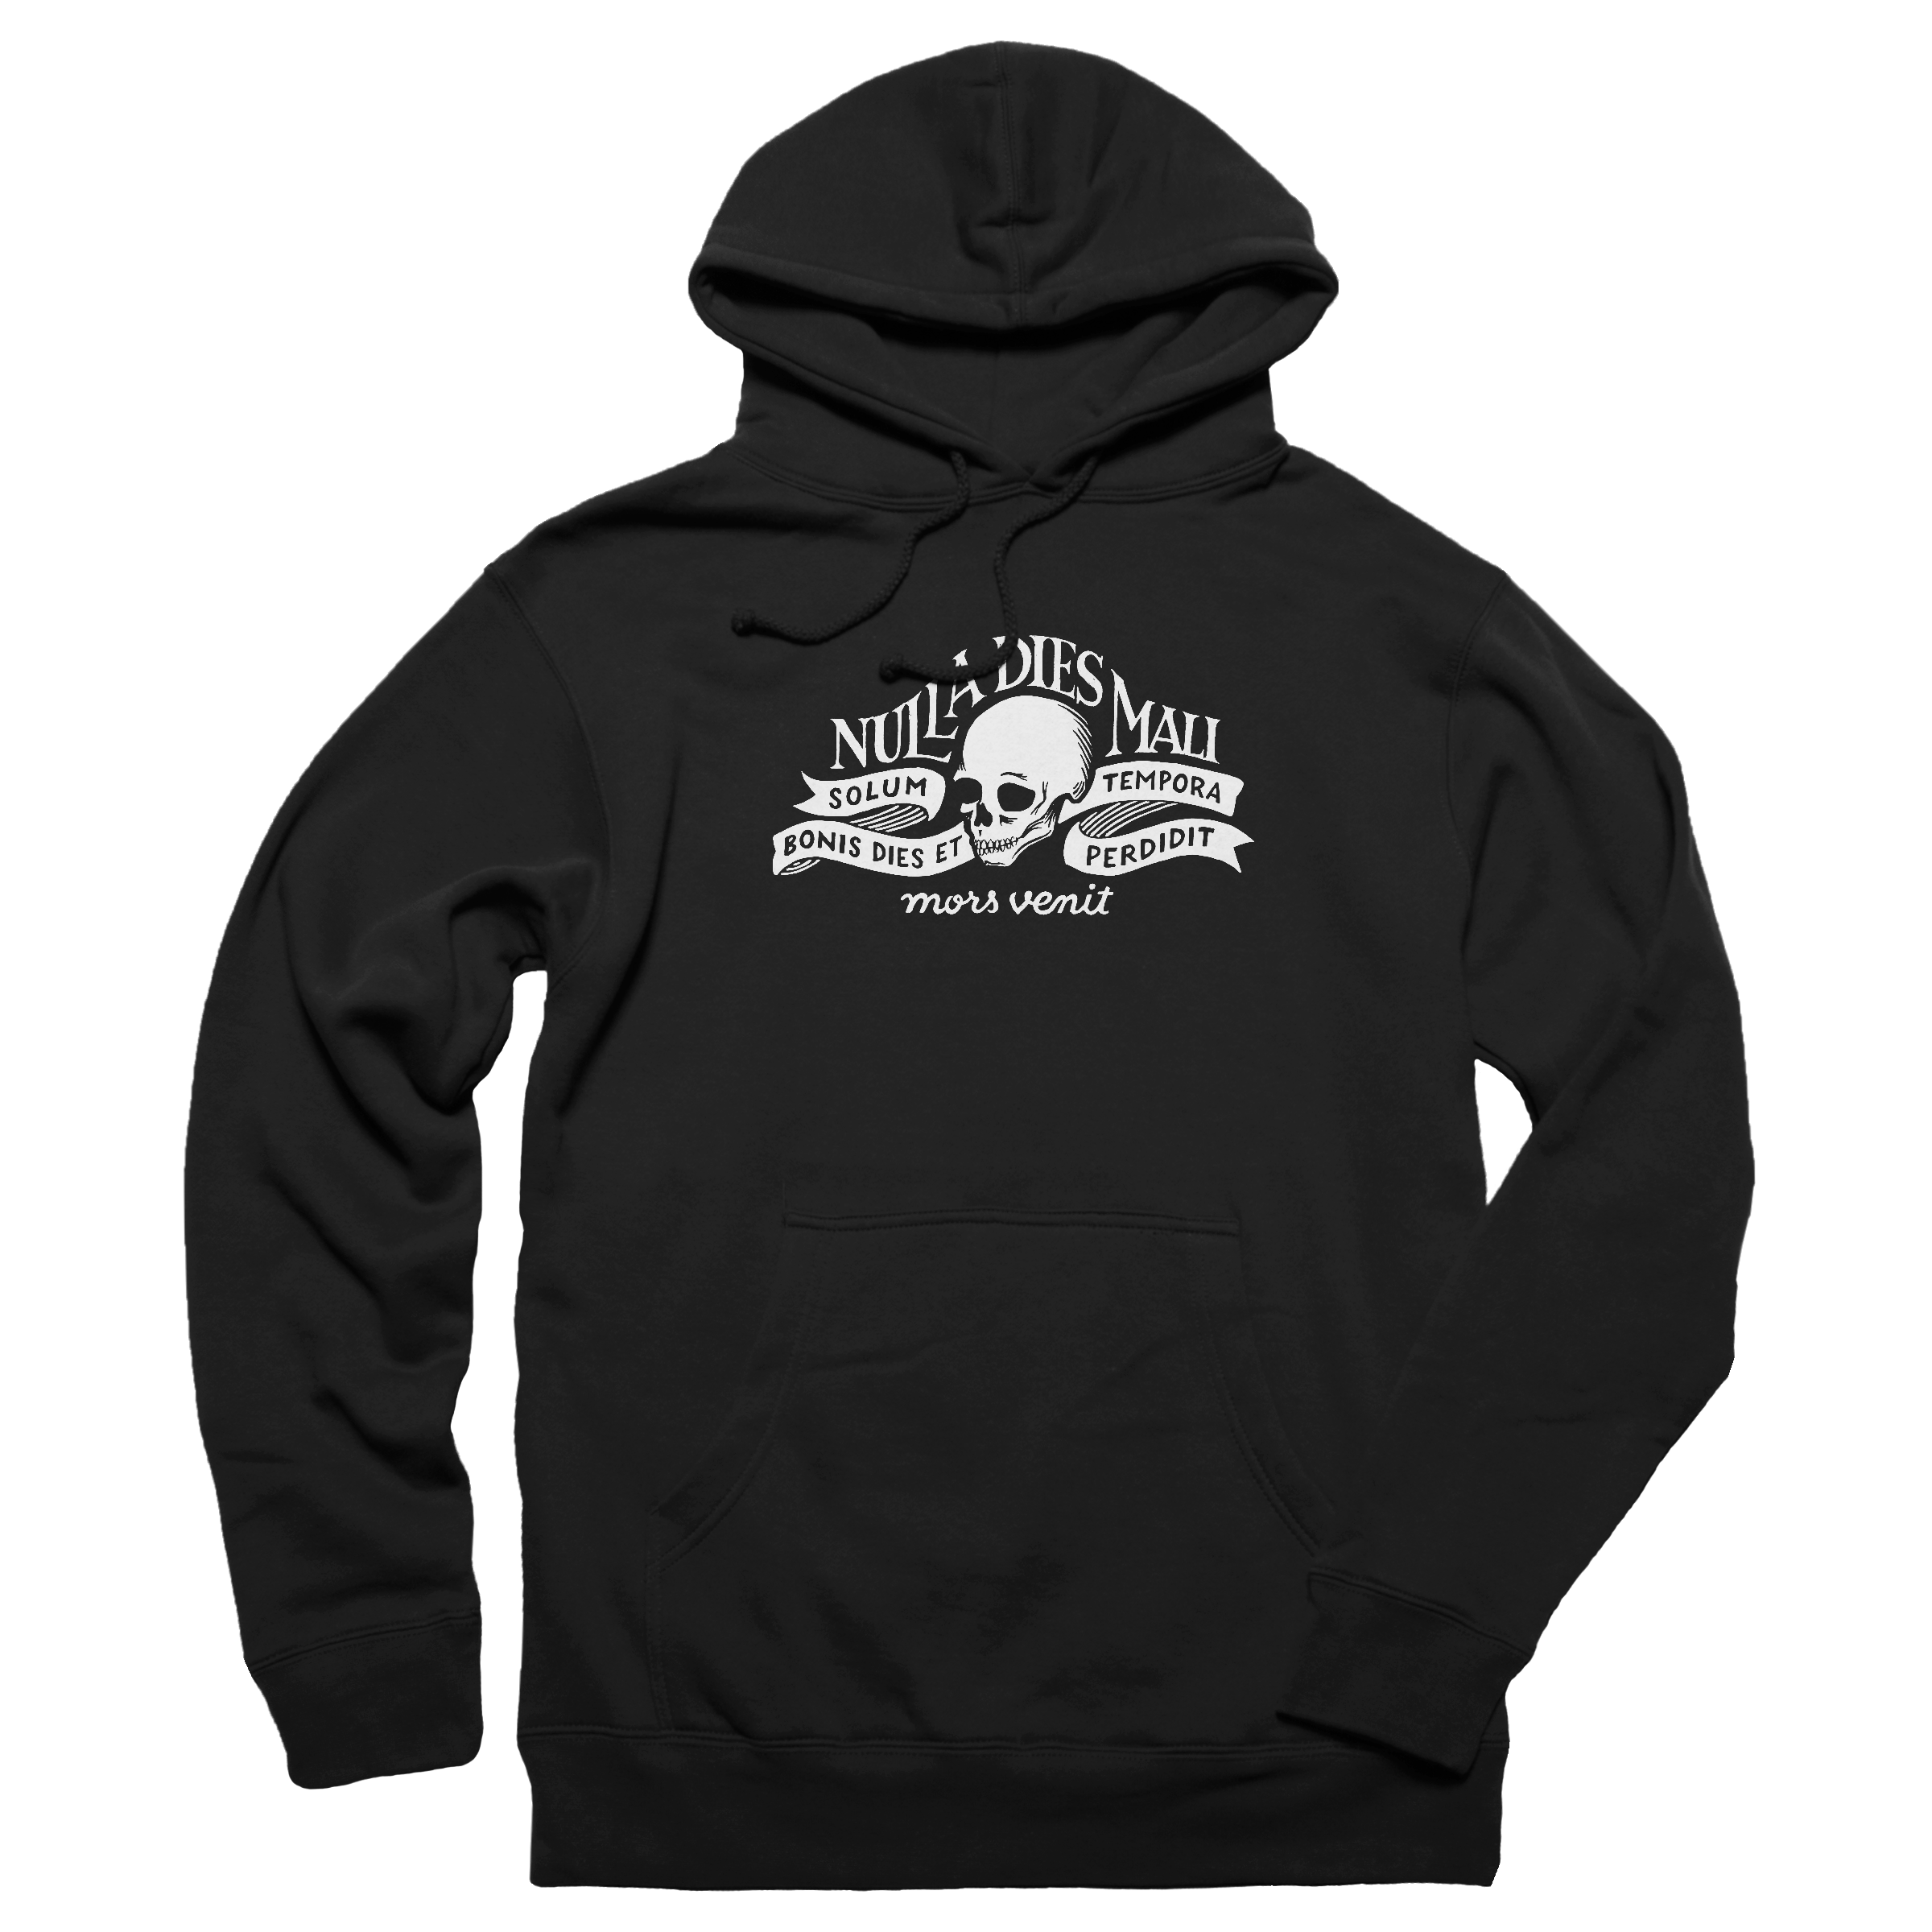 No Bad Days Pullover Hoodie